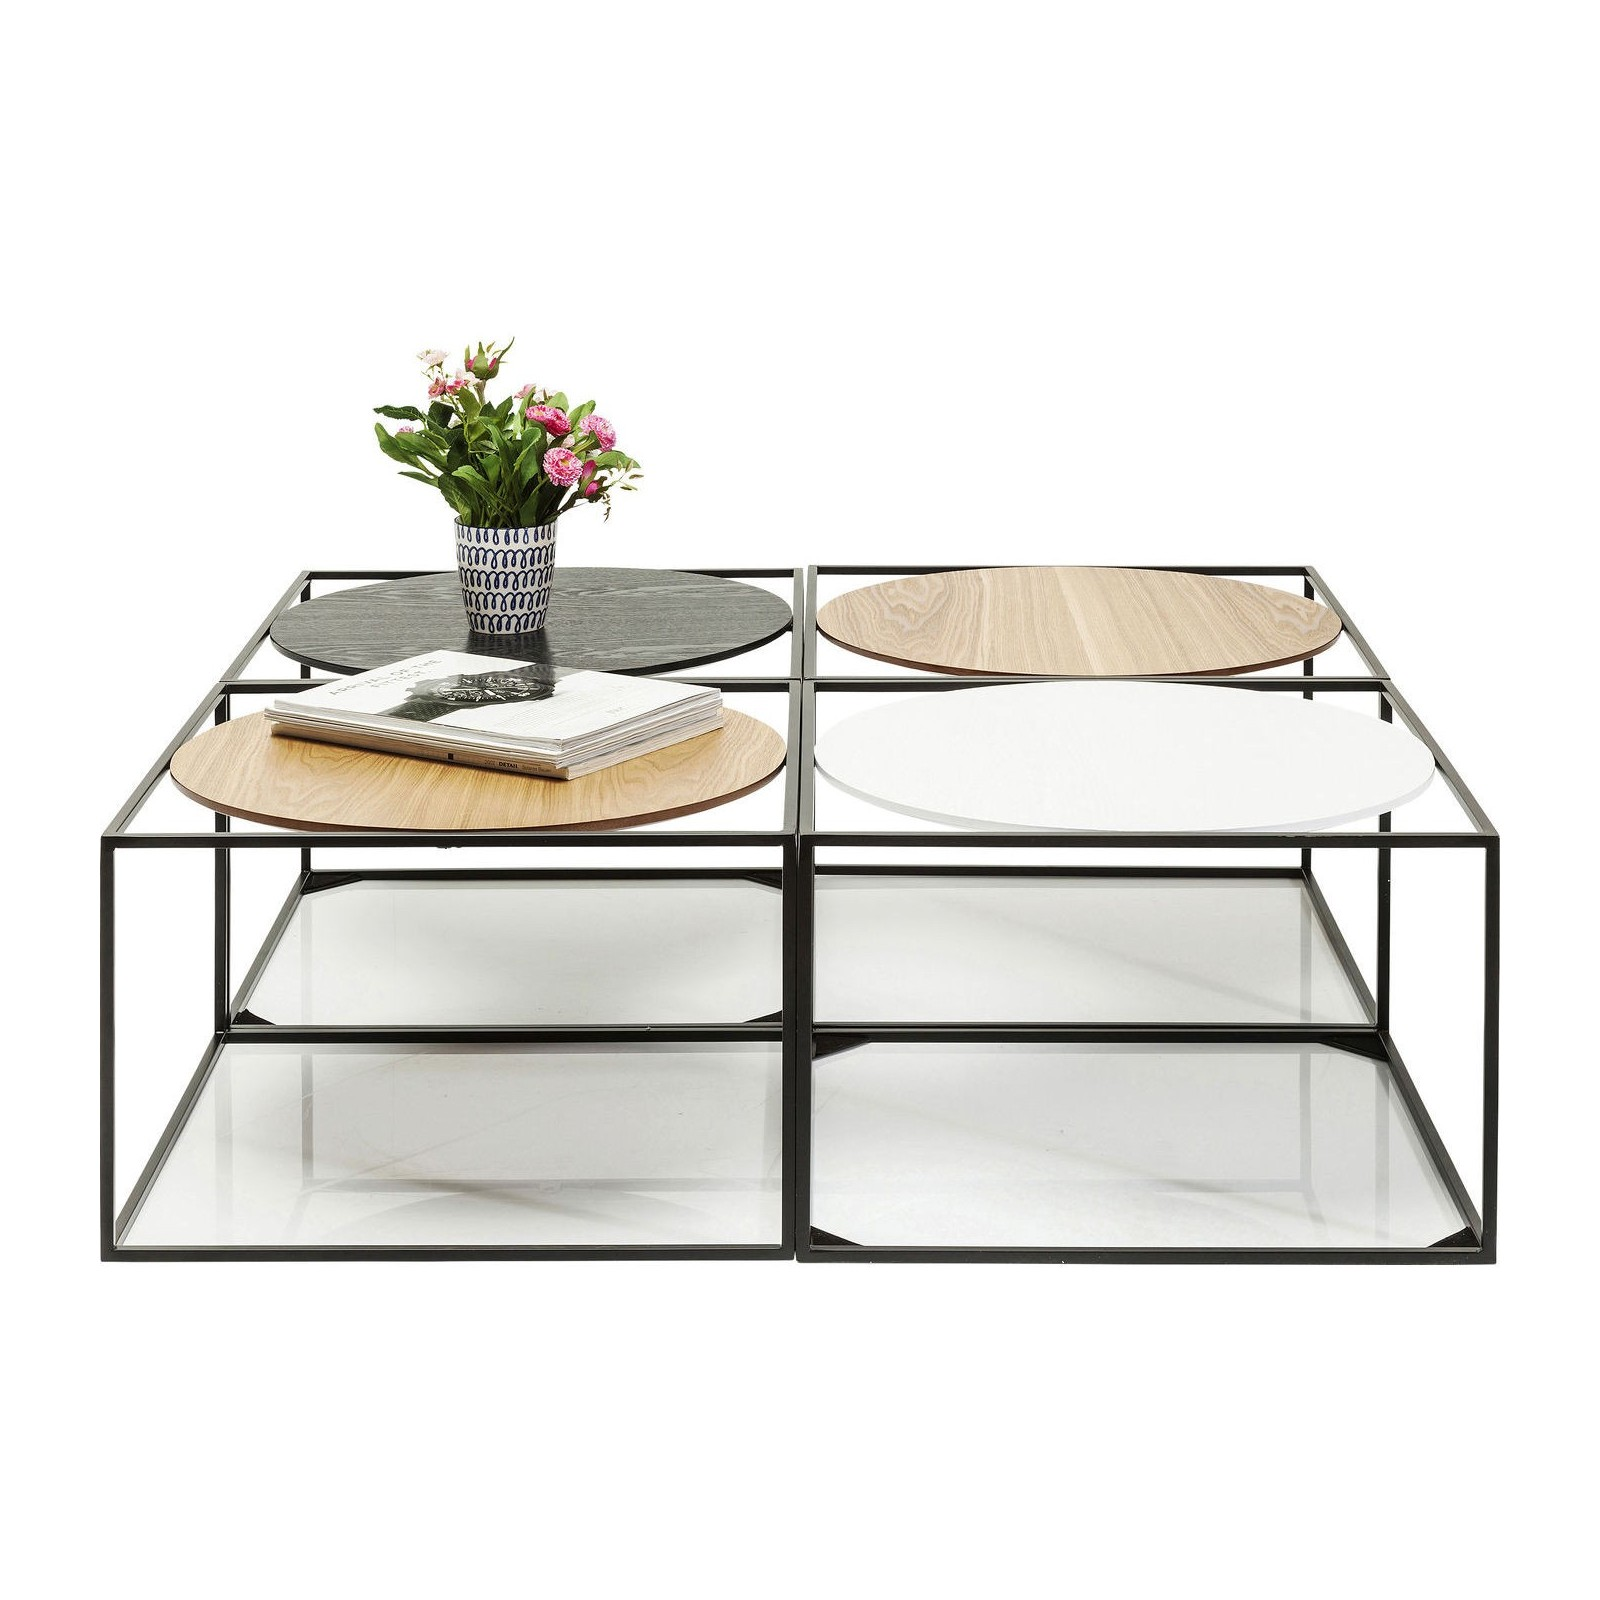 table basse habitat table basse dublin bois naturel prix. Black Bedroom Furniture Sets. Home Design Ideas